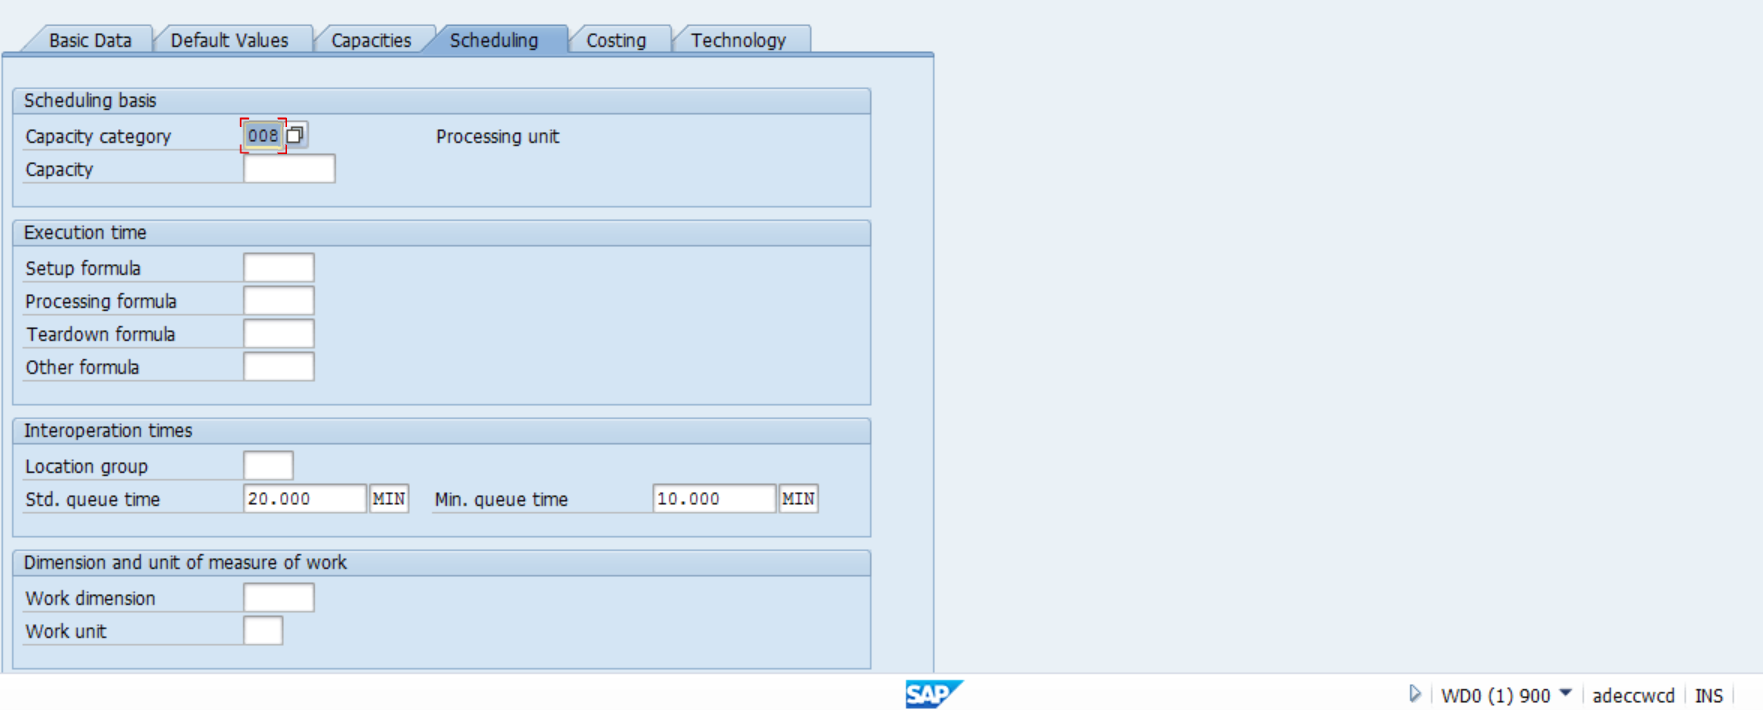 Standard and Minimum Queue Times in SAP Work Center